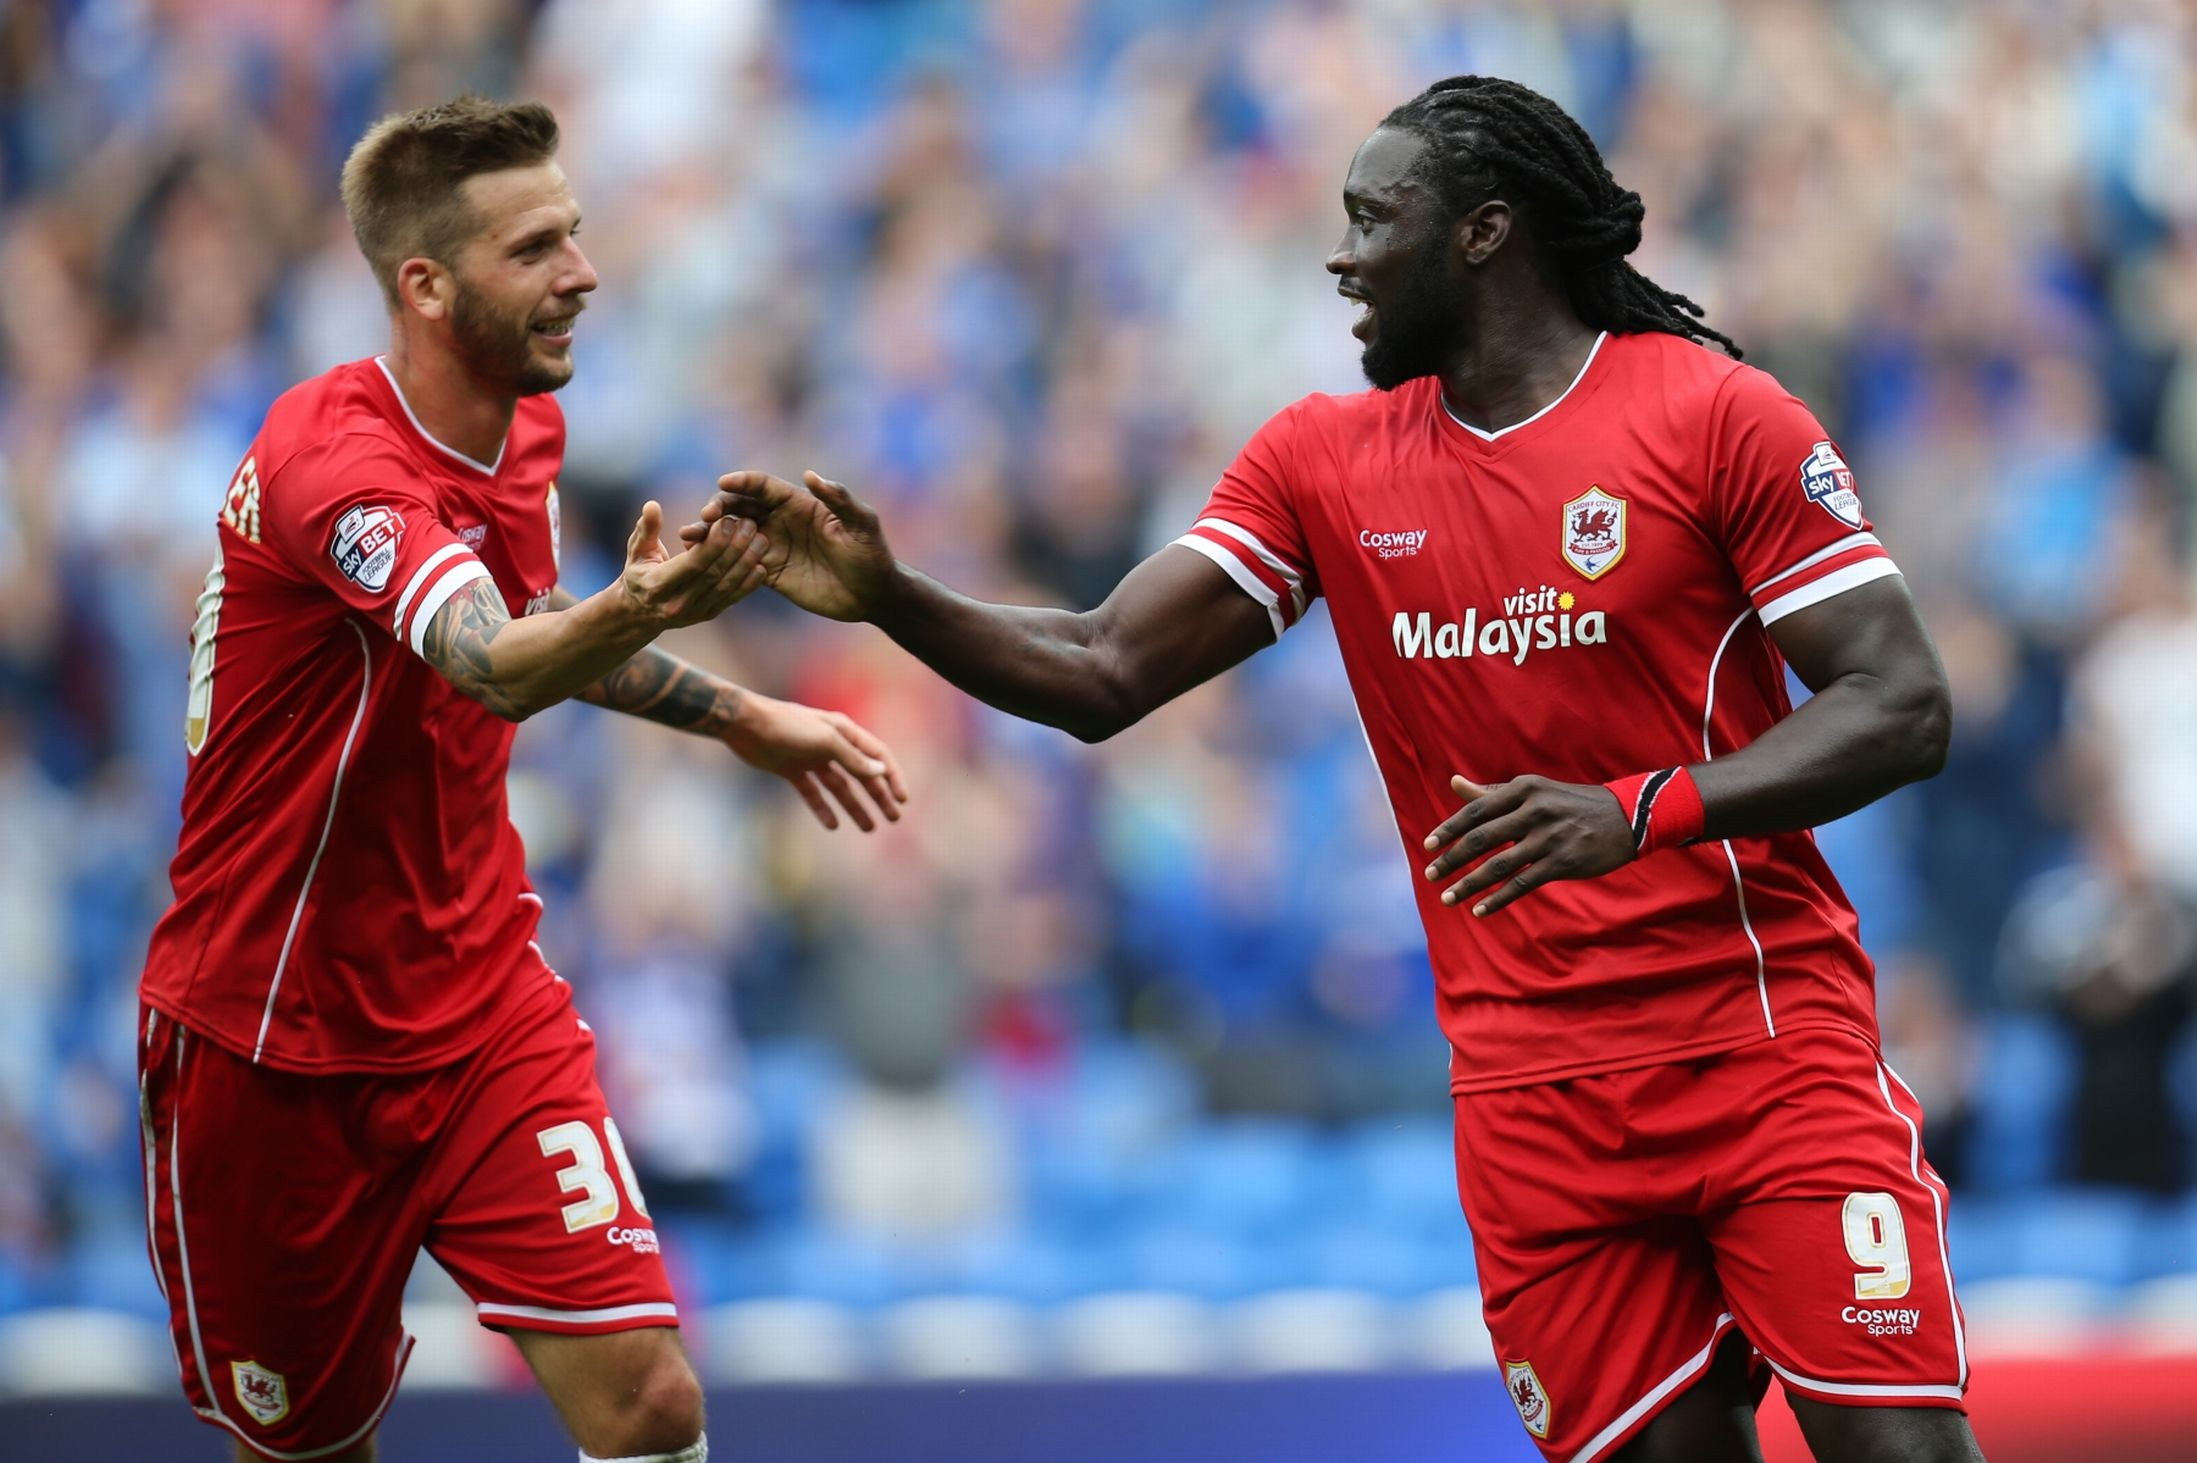 Kenwyne Jones vs Huddersfield Town